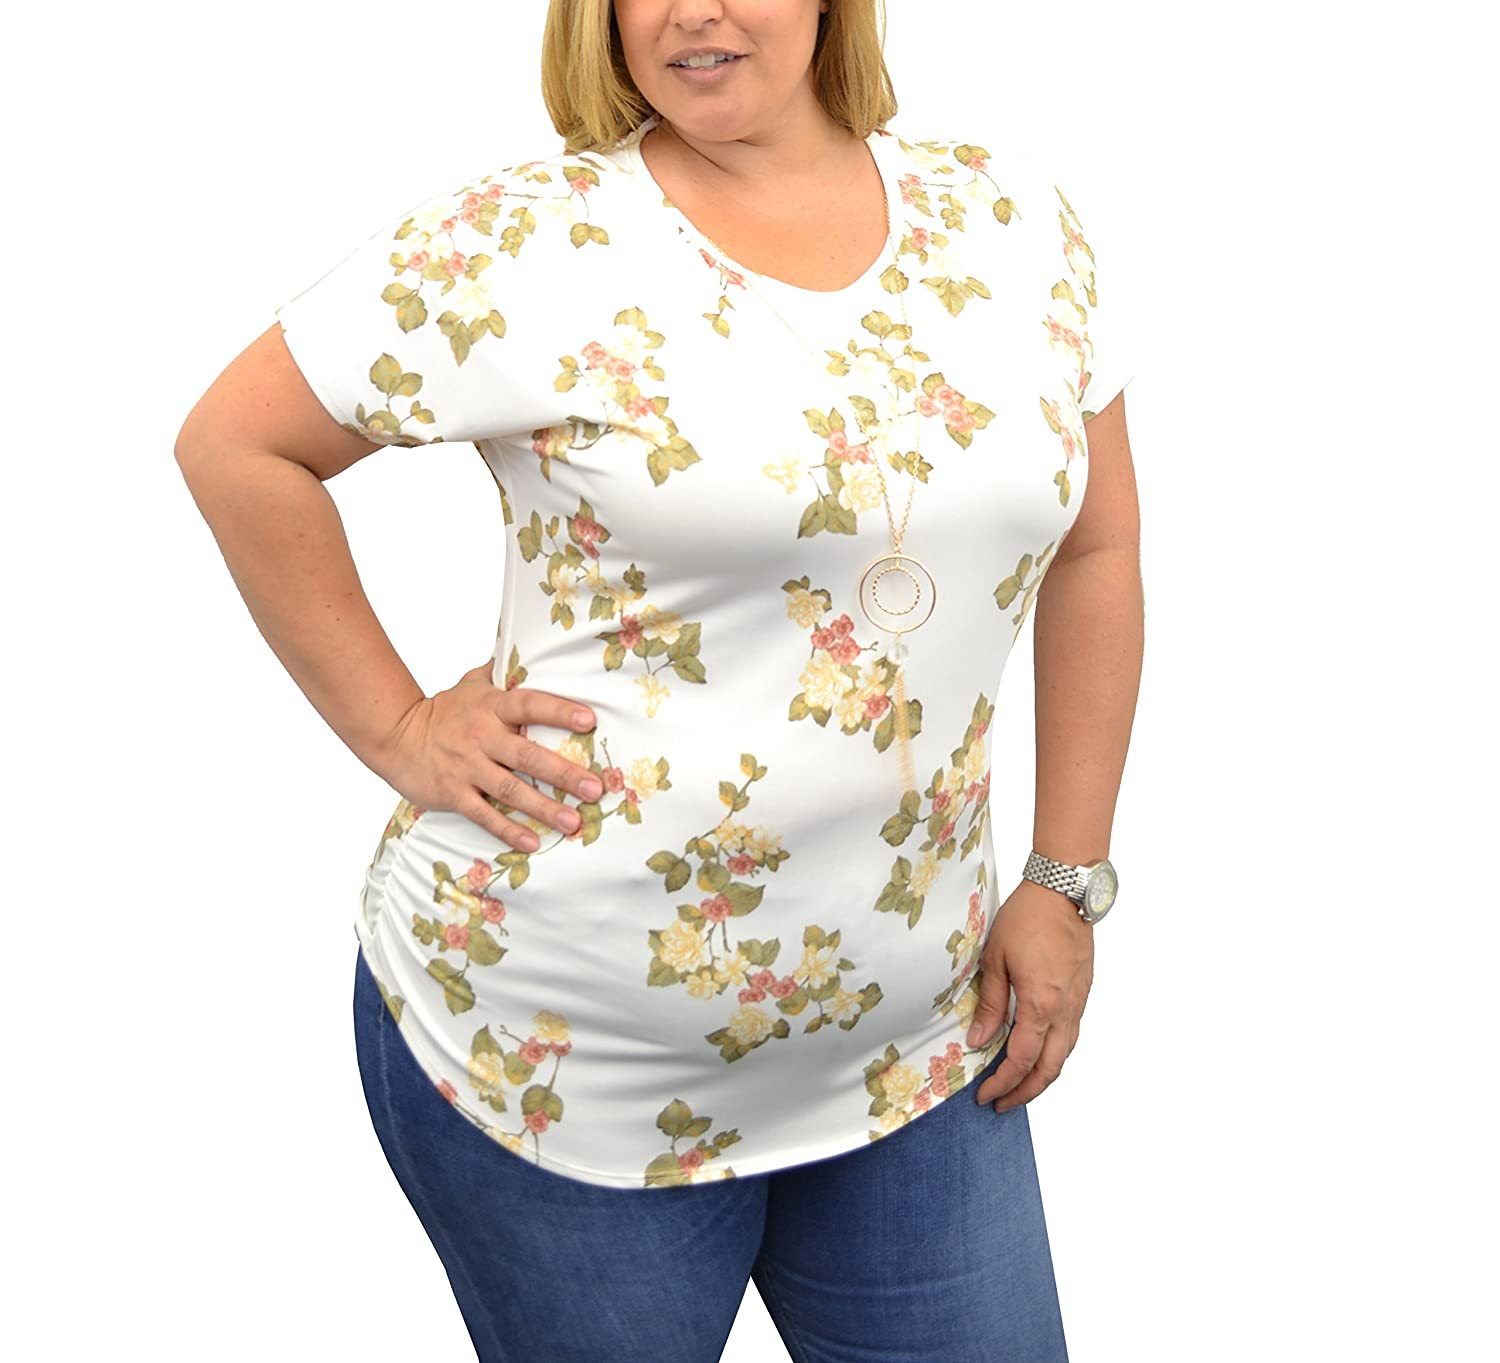 e95907d734252 Elegant Top By Urban Rose  Create a polished warm-weather look with this  plus-size shirt for women. It offers a comfortable fit and is available in  four ...